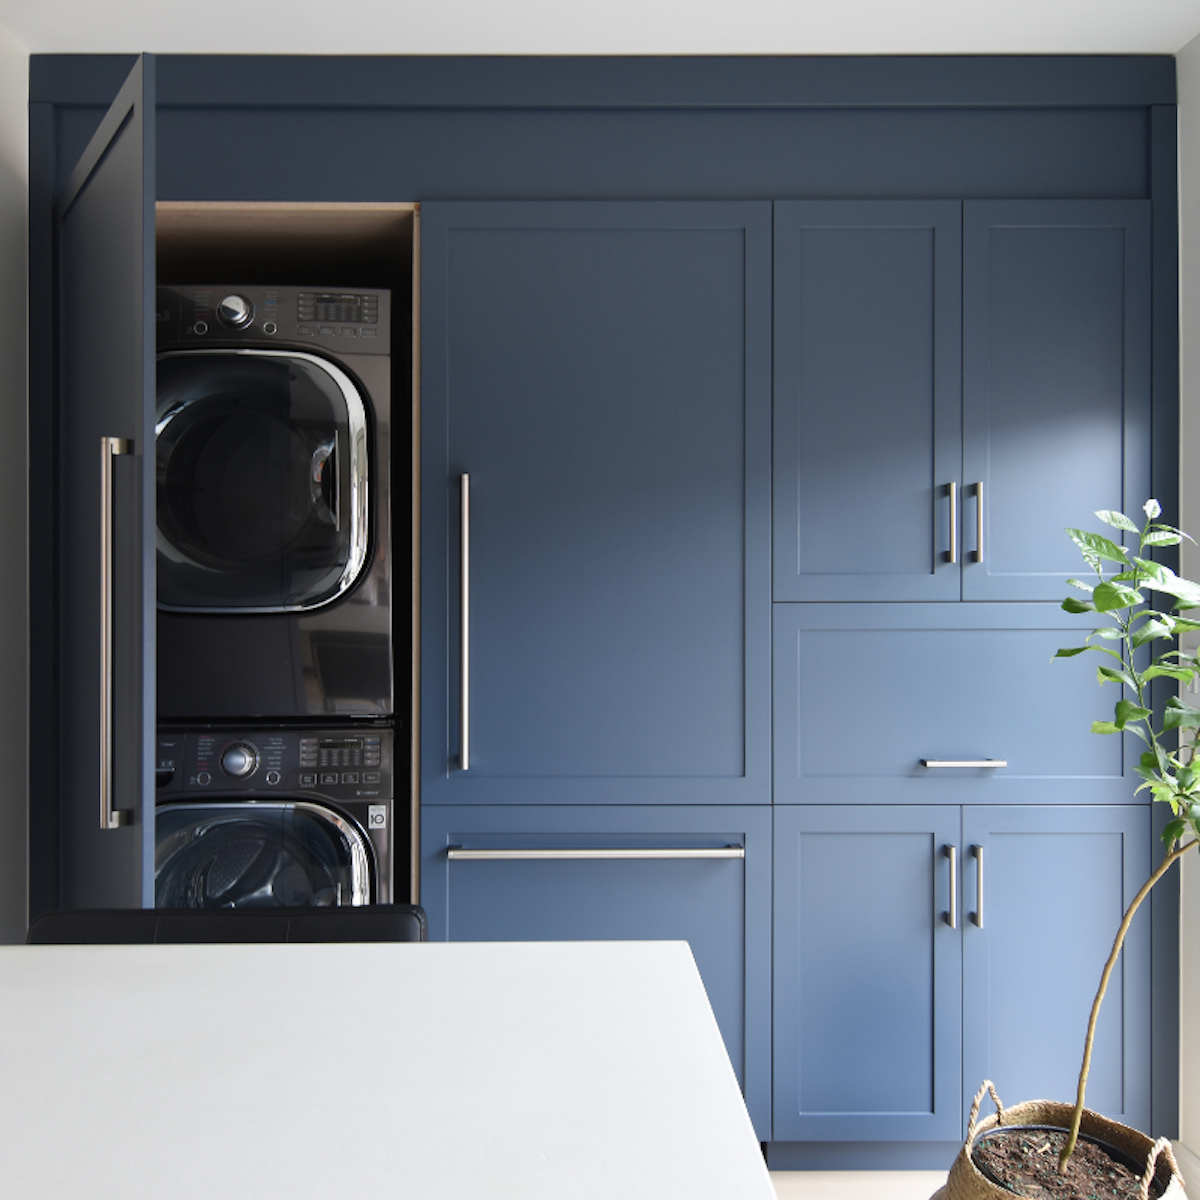 washer-dryer-behind-blue-cabinetry-interior-design-3